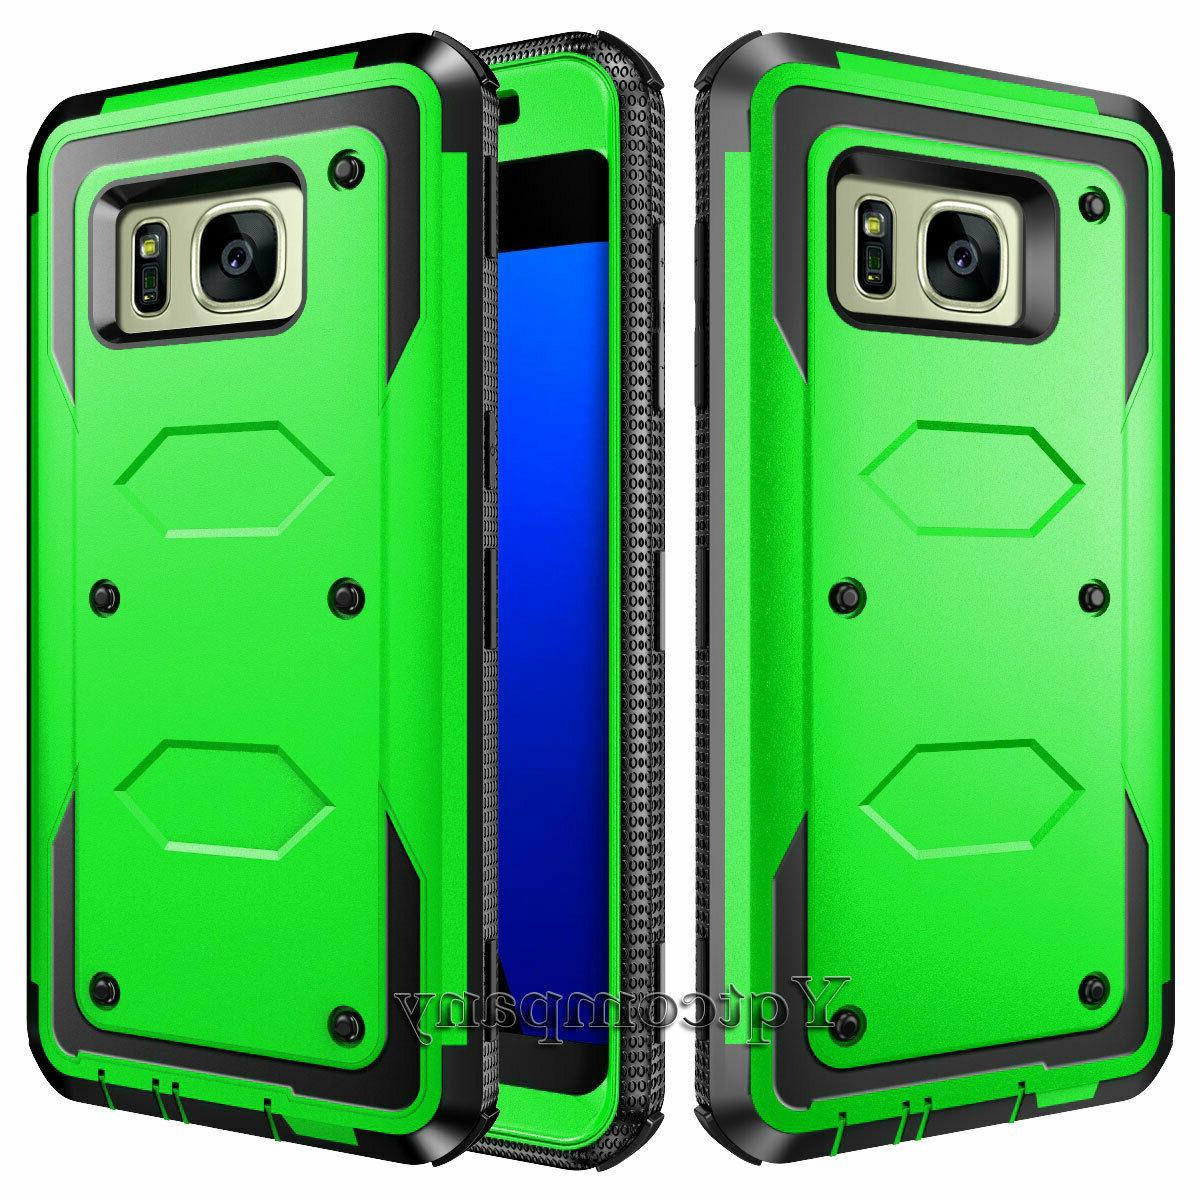 For Samsung S6/S7 Edge/S8/S9/S20/Note Phone